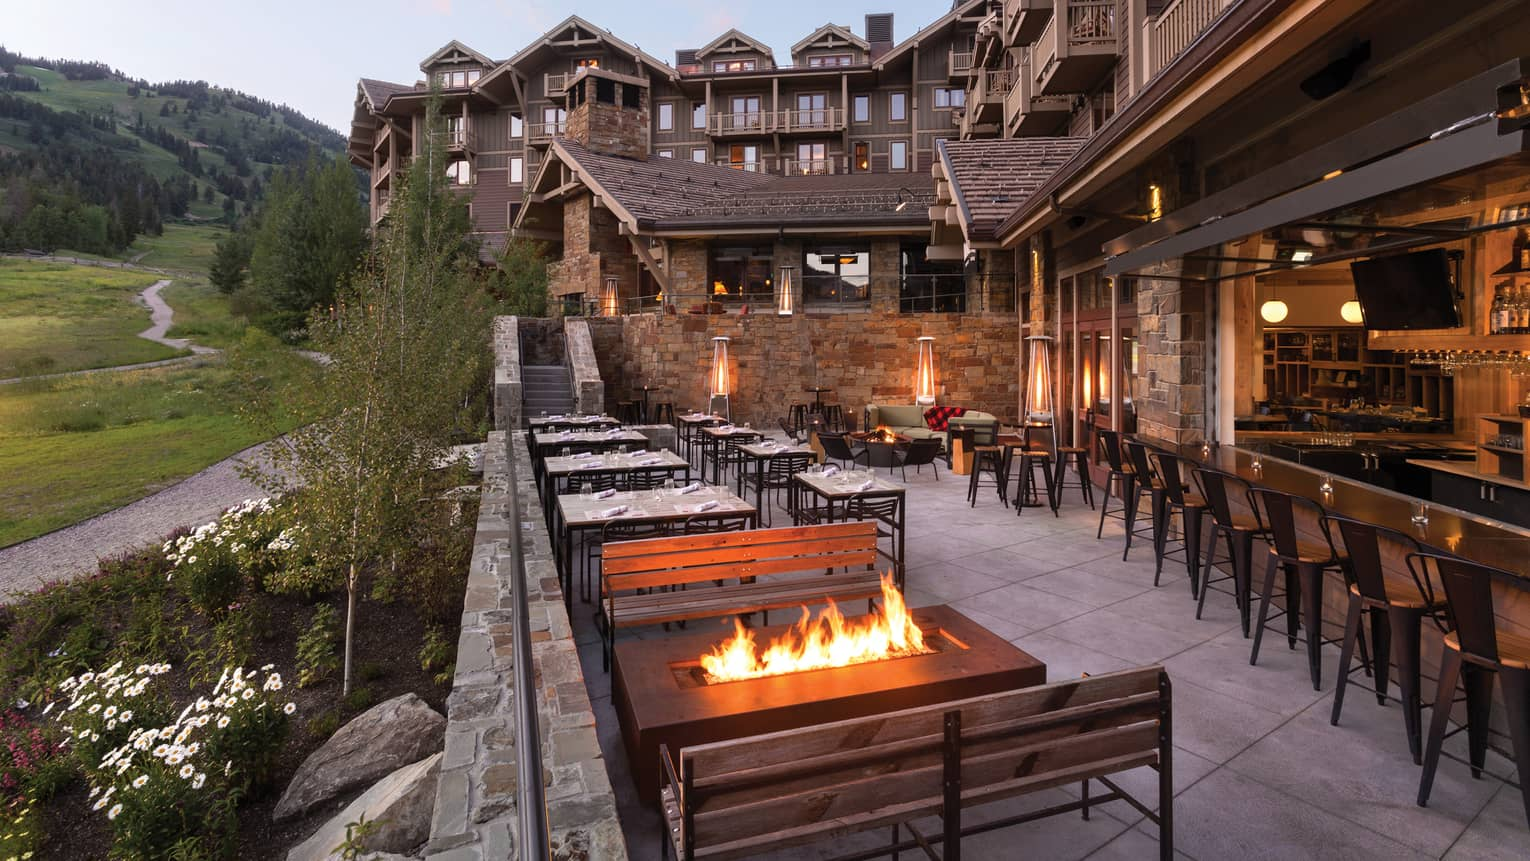 Handle Bar dining patio at dusk, outdoor fireplaces, mountains and lodge in background